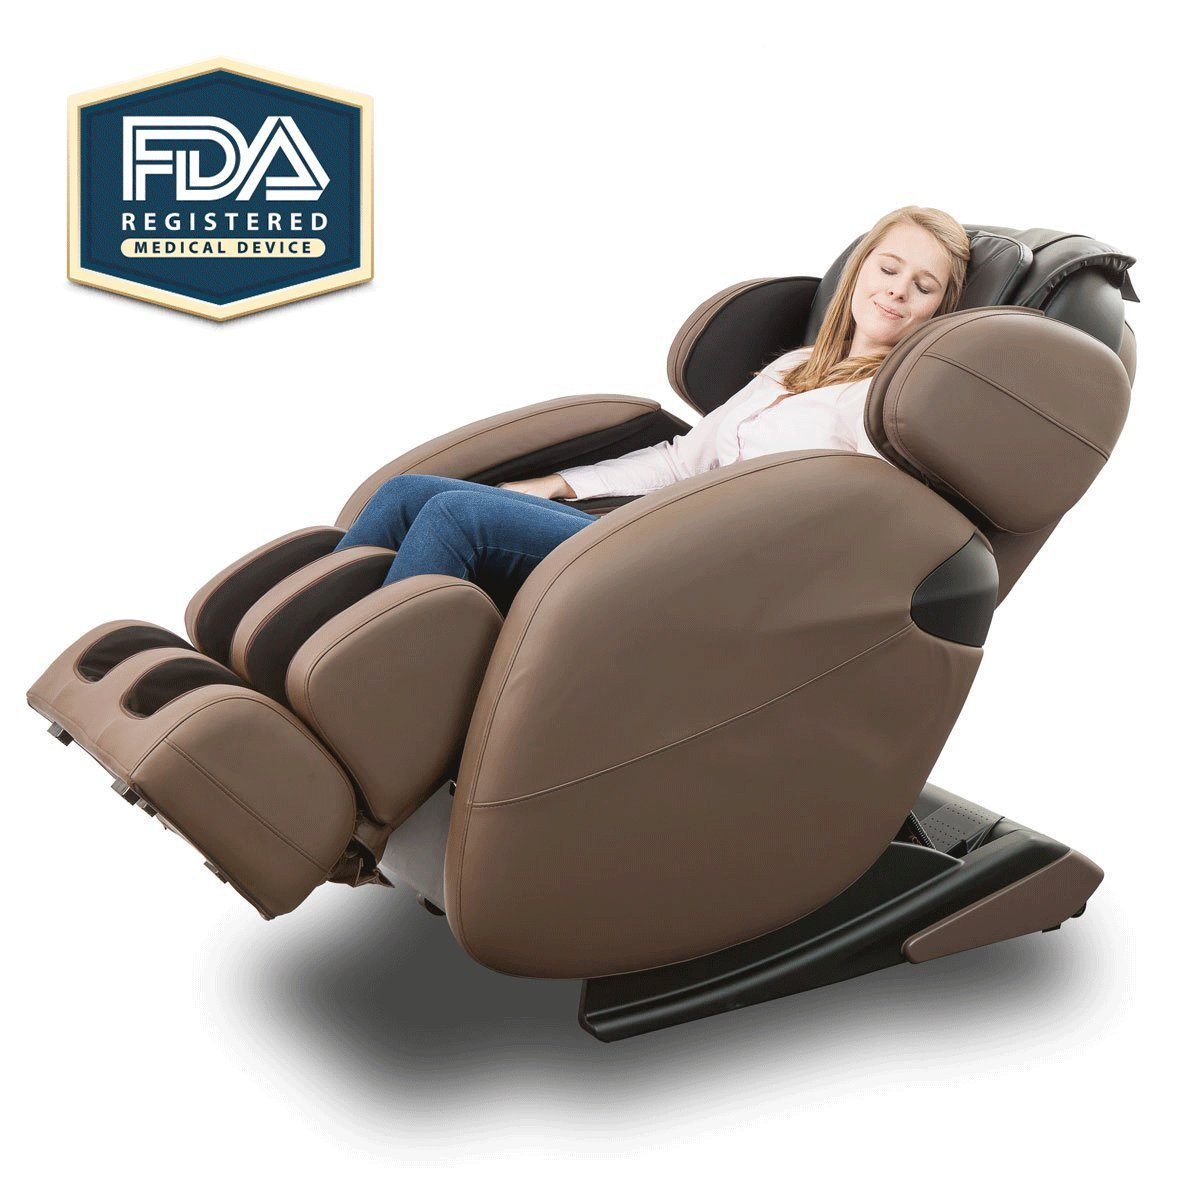 kahuna massage chair lm6800 fda approved review